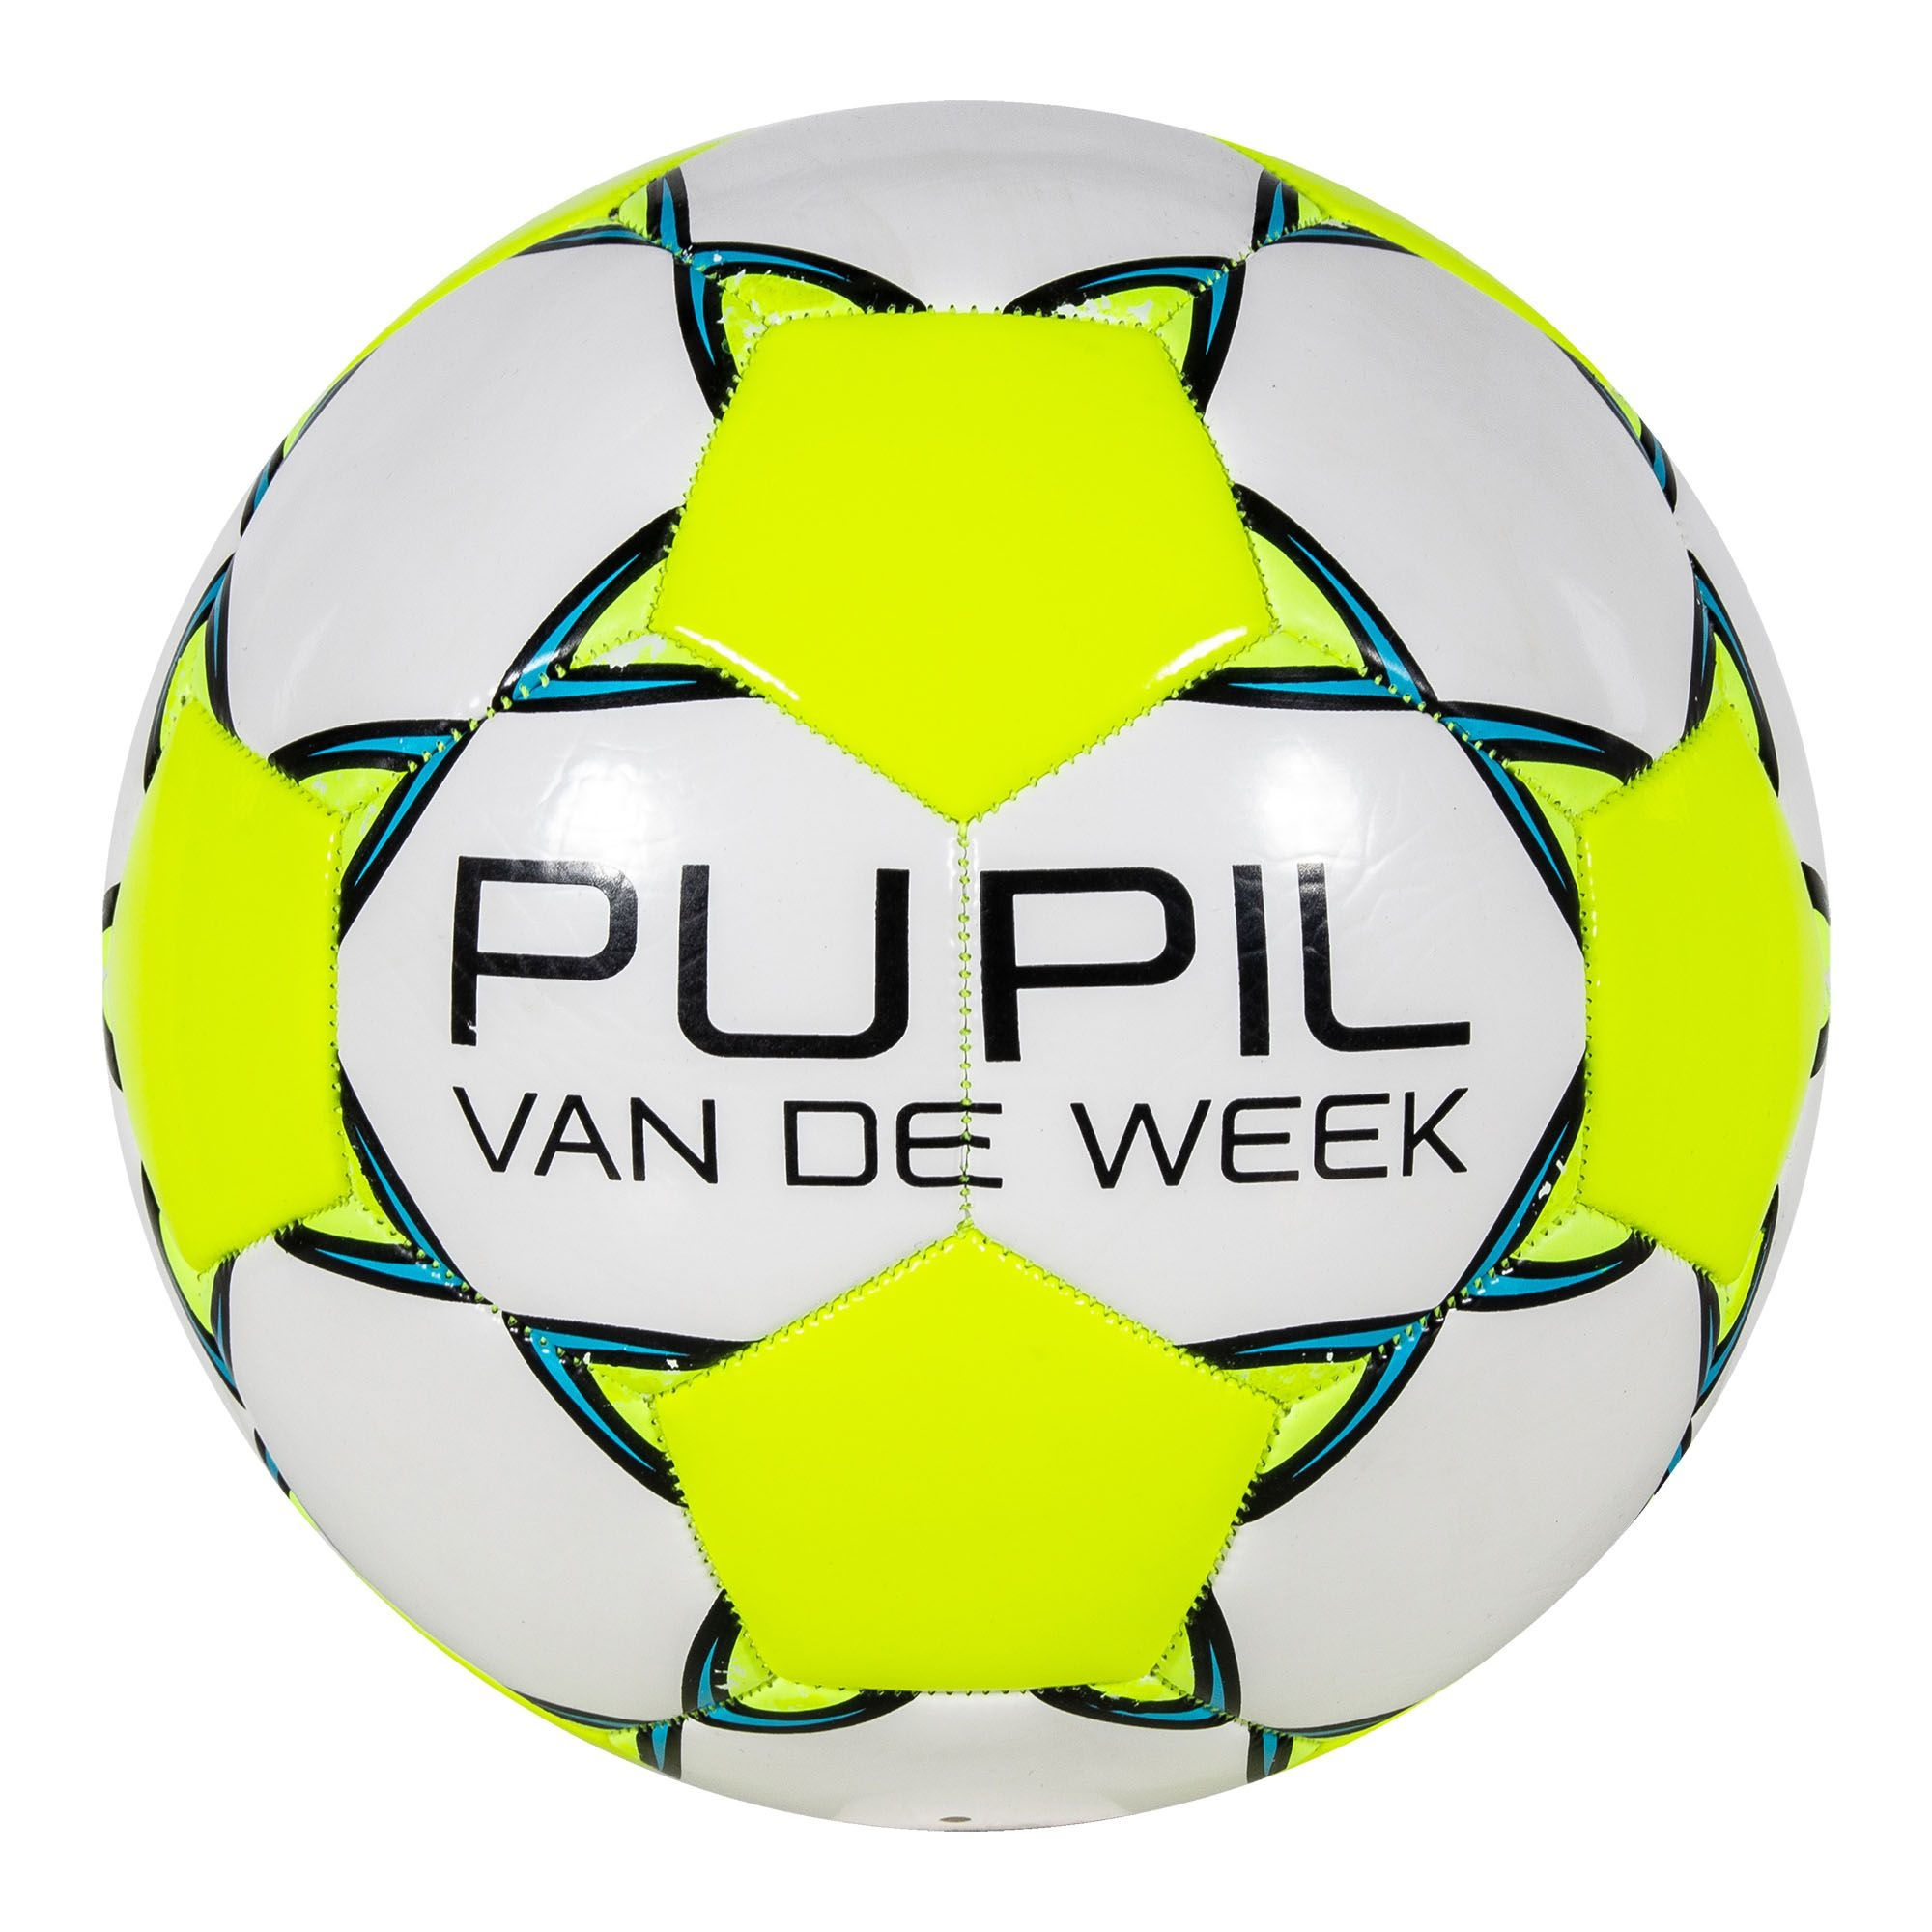 Derbystar Pupil van de week bal